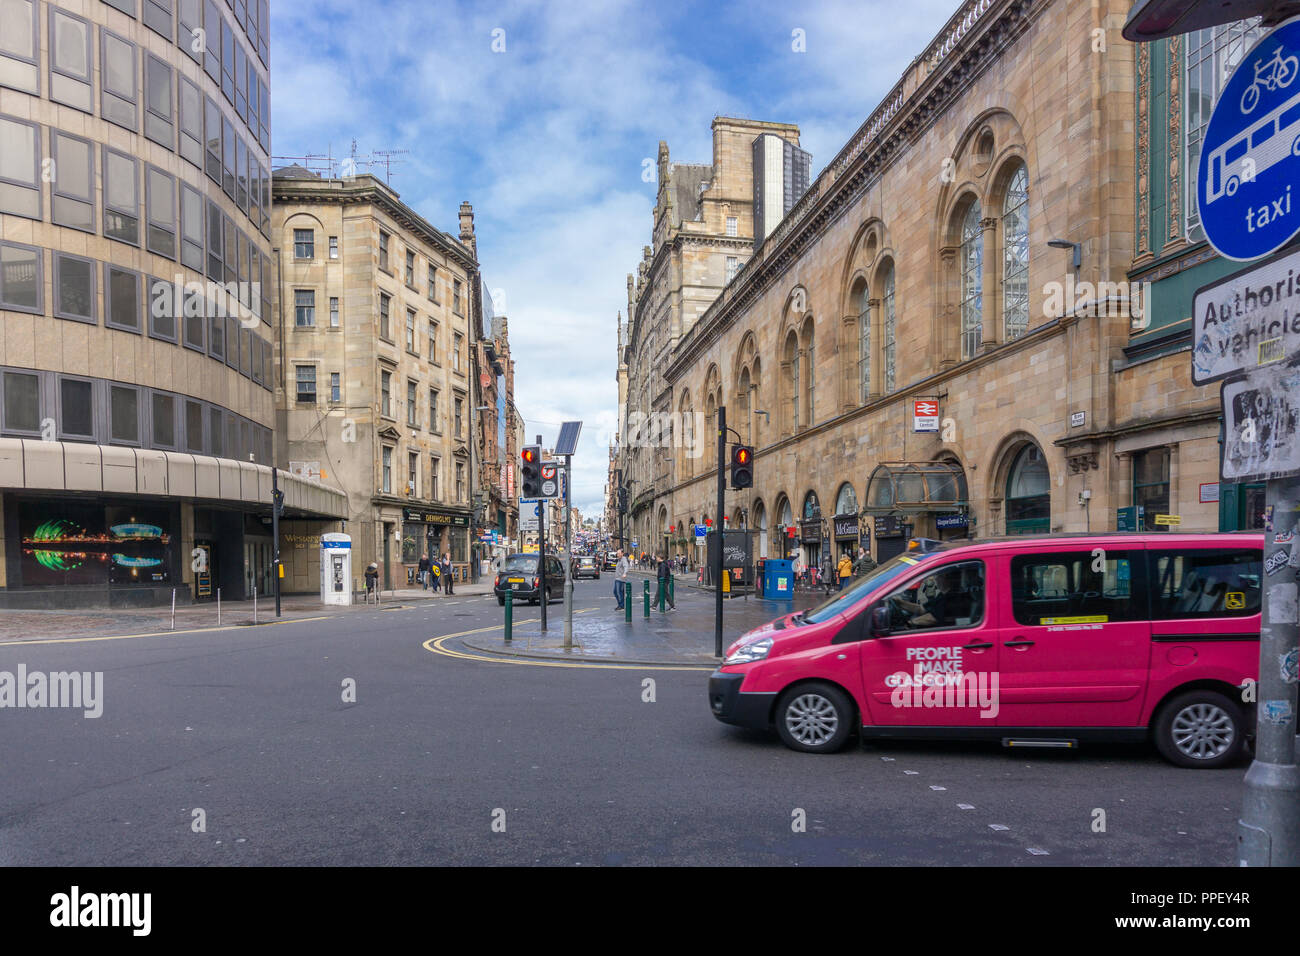 Glasgow City, Scotland, UK - September 22, 2018: Looking up Hope Street Glasgow at the side of Central Station with pedestrians and traffic. - Stock Image